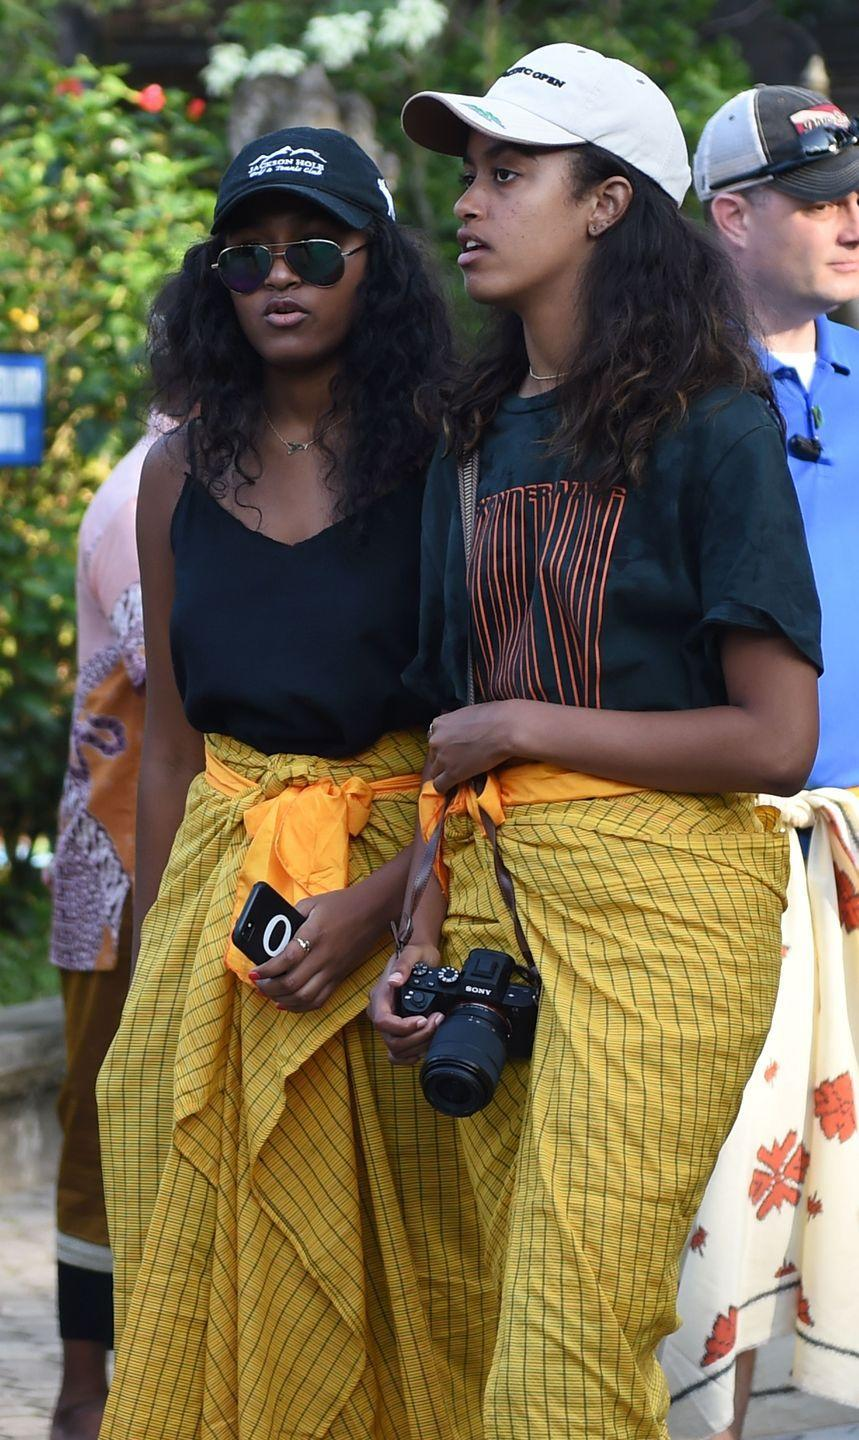 <p>Americans quite literally saw Malia and Sasha Obama grow up before their eyes, since Sasha was seven and Malia was 10 when their dad became president. Throughout President Obama's eight years in the White House, the girls' style matured as time passed.</p>